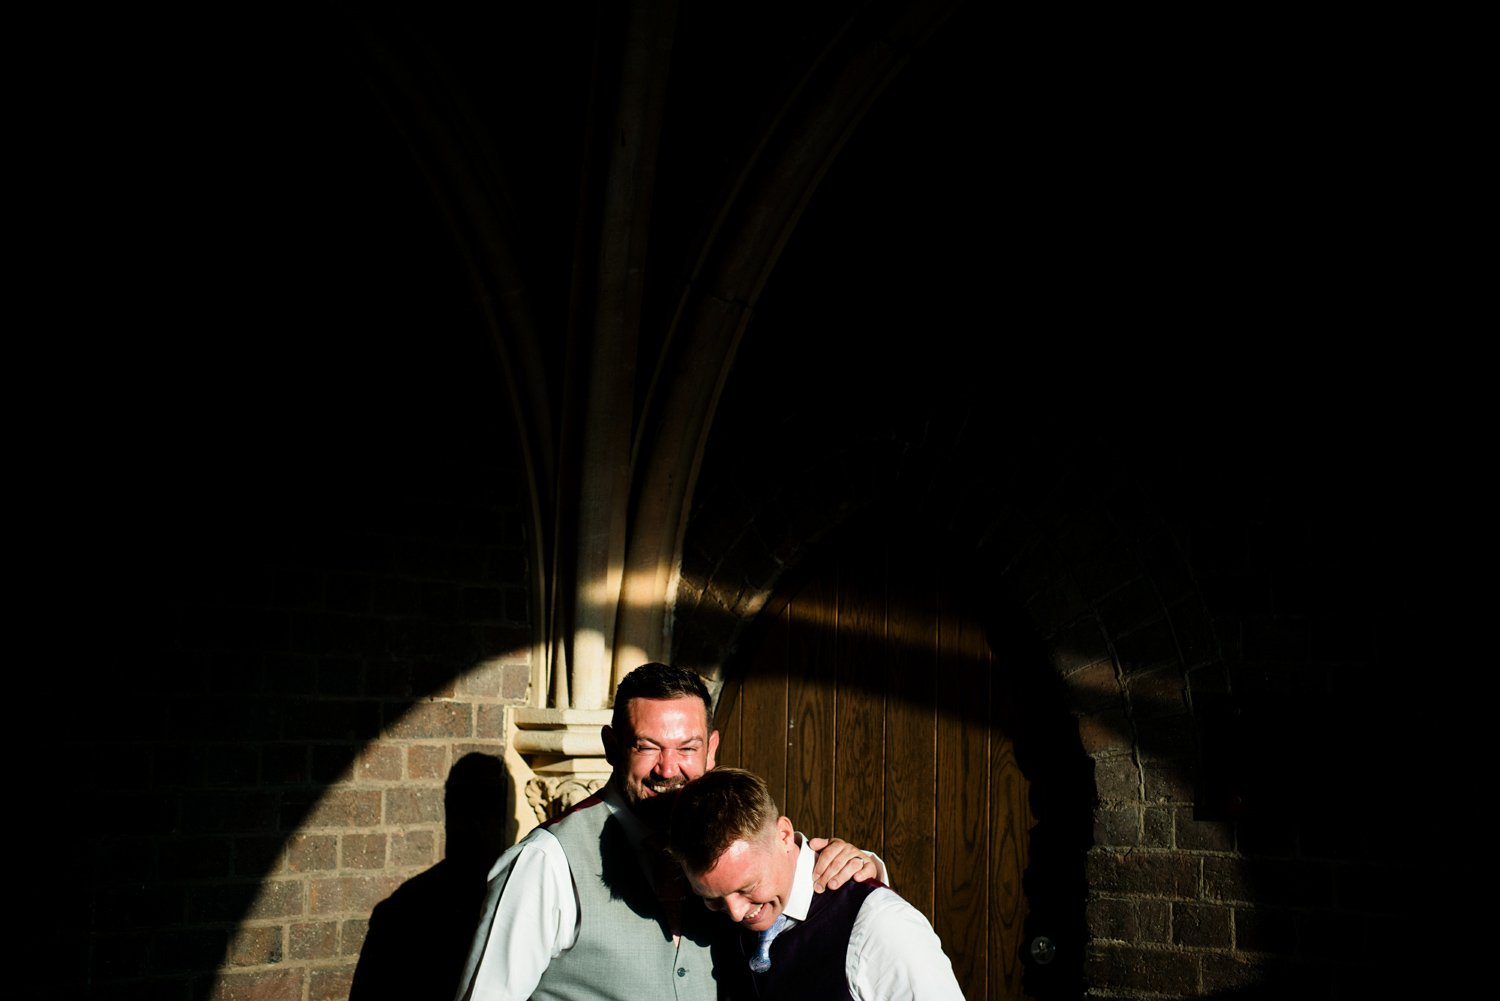 st-stephens-rosslyn-hill-wedding-photography-45